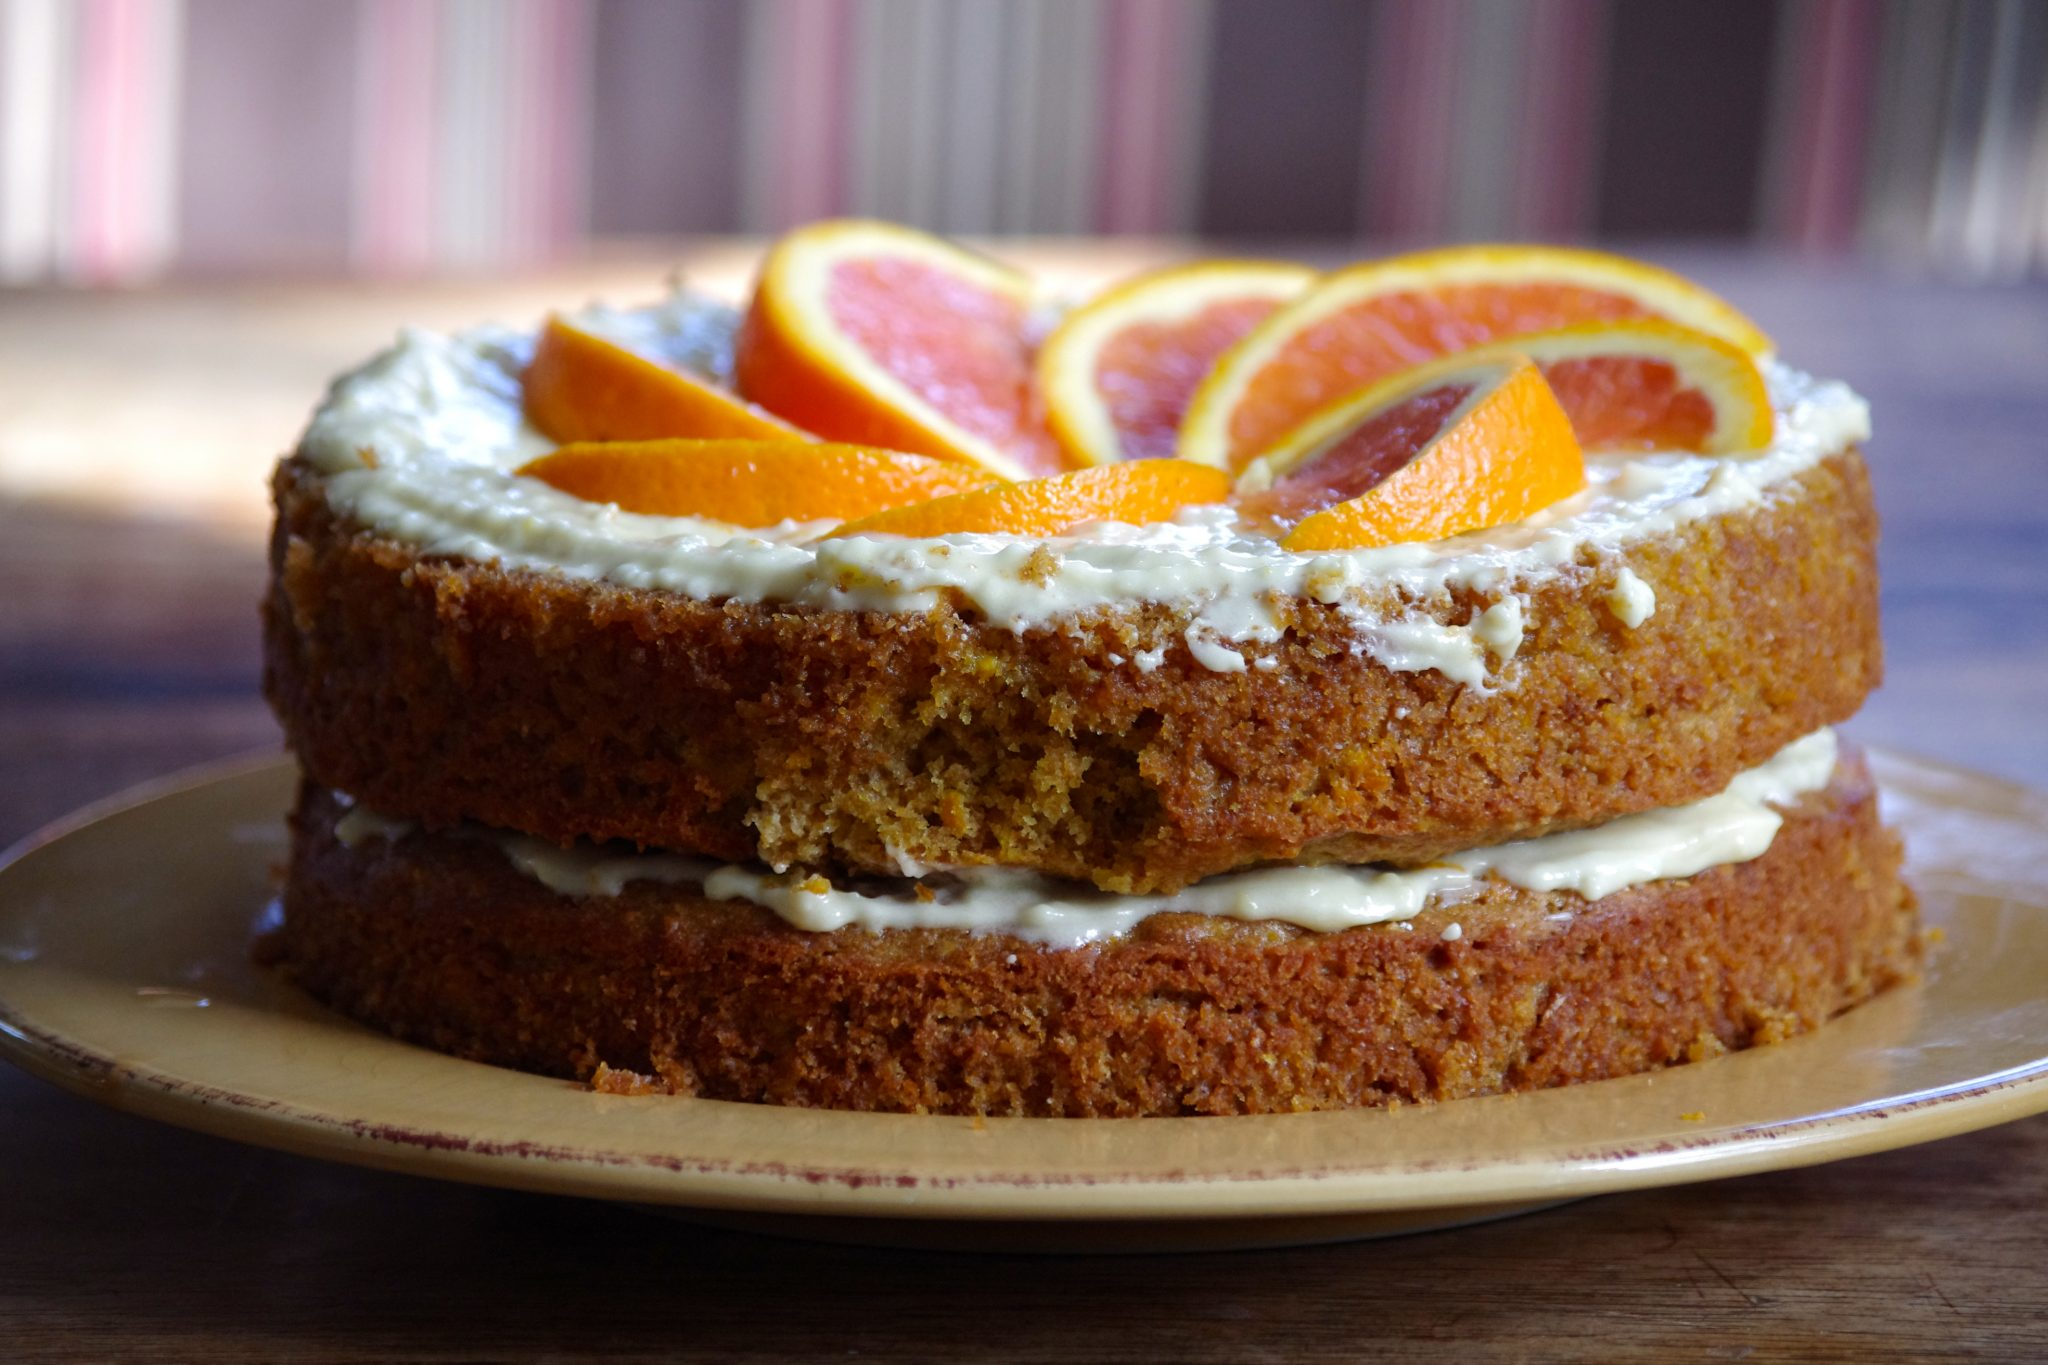 The most delicious agave-sweetened orange cake you've ever tasted, made with whole grain flour